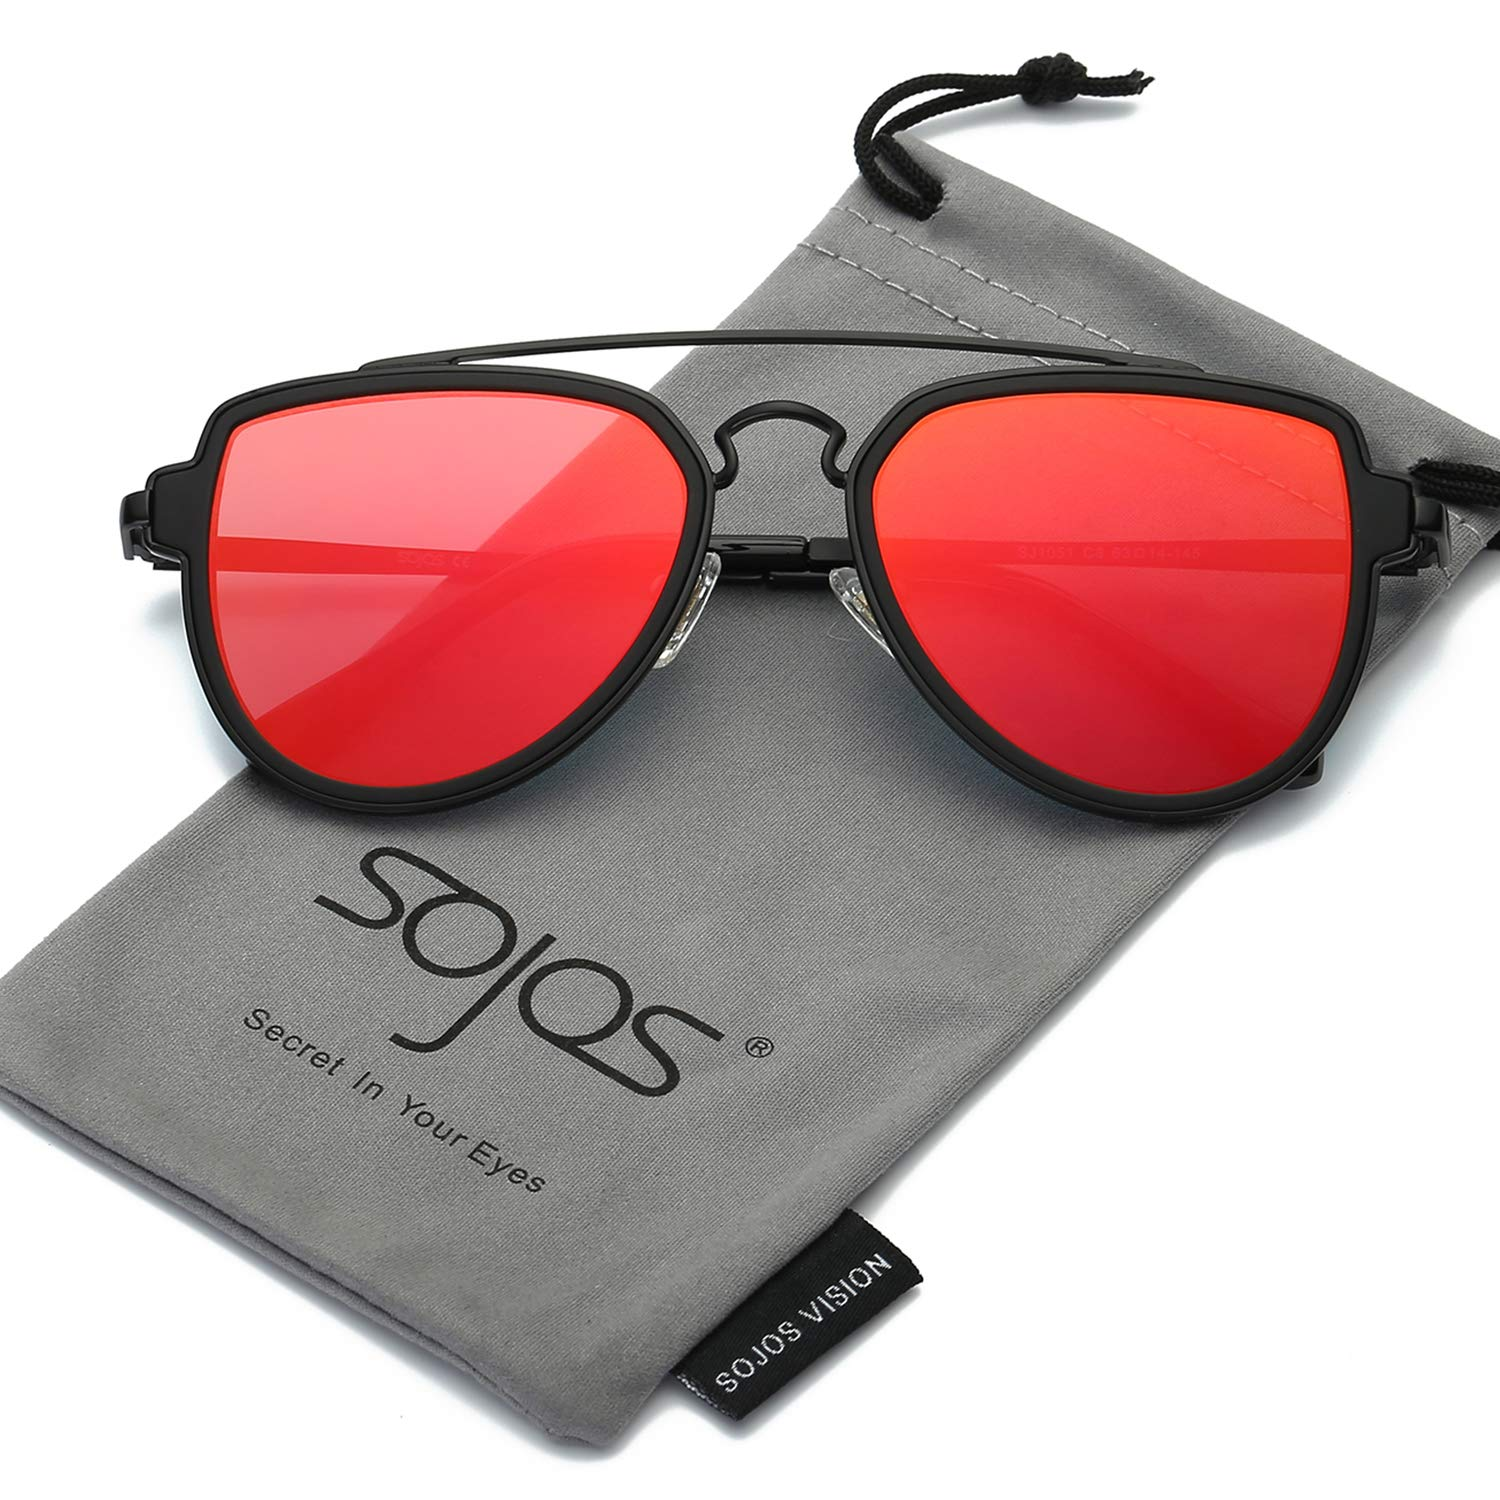 SojoS Fashion Aviator Unisex Sunglasses Flat Mirrored Lens Double Bridge SJ1051 with Matte Black Frame/Red Mirrored Lens